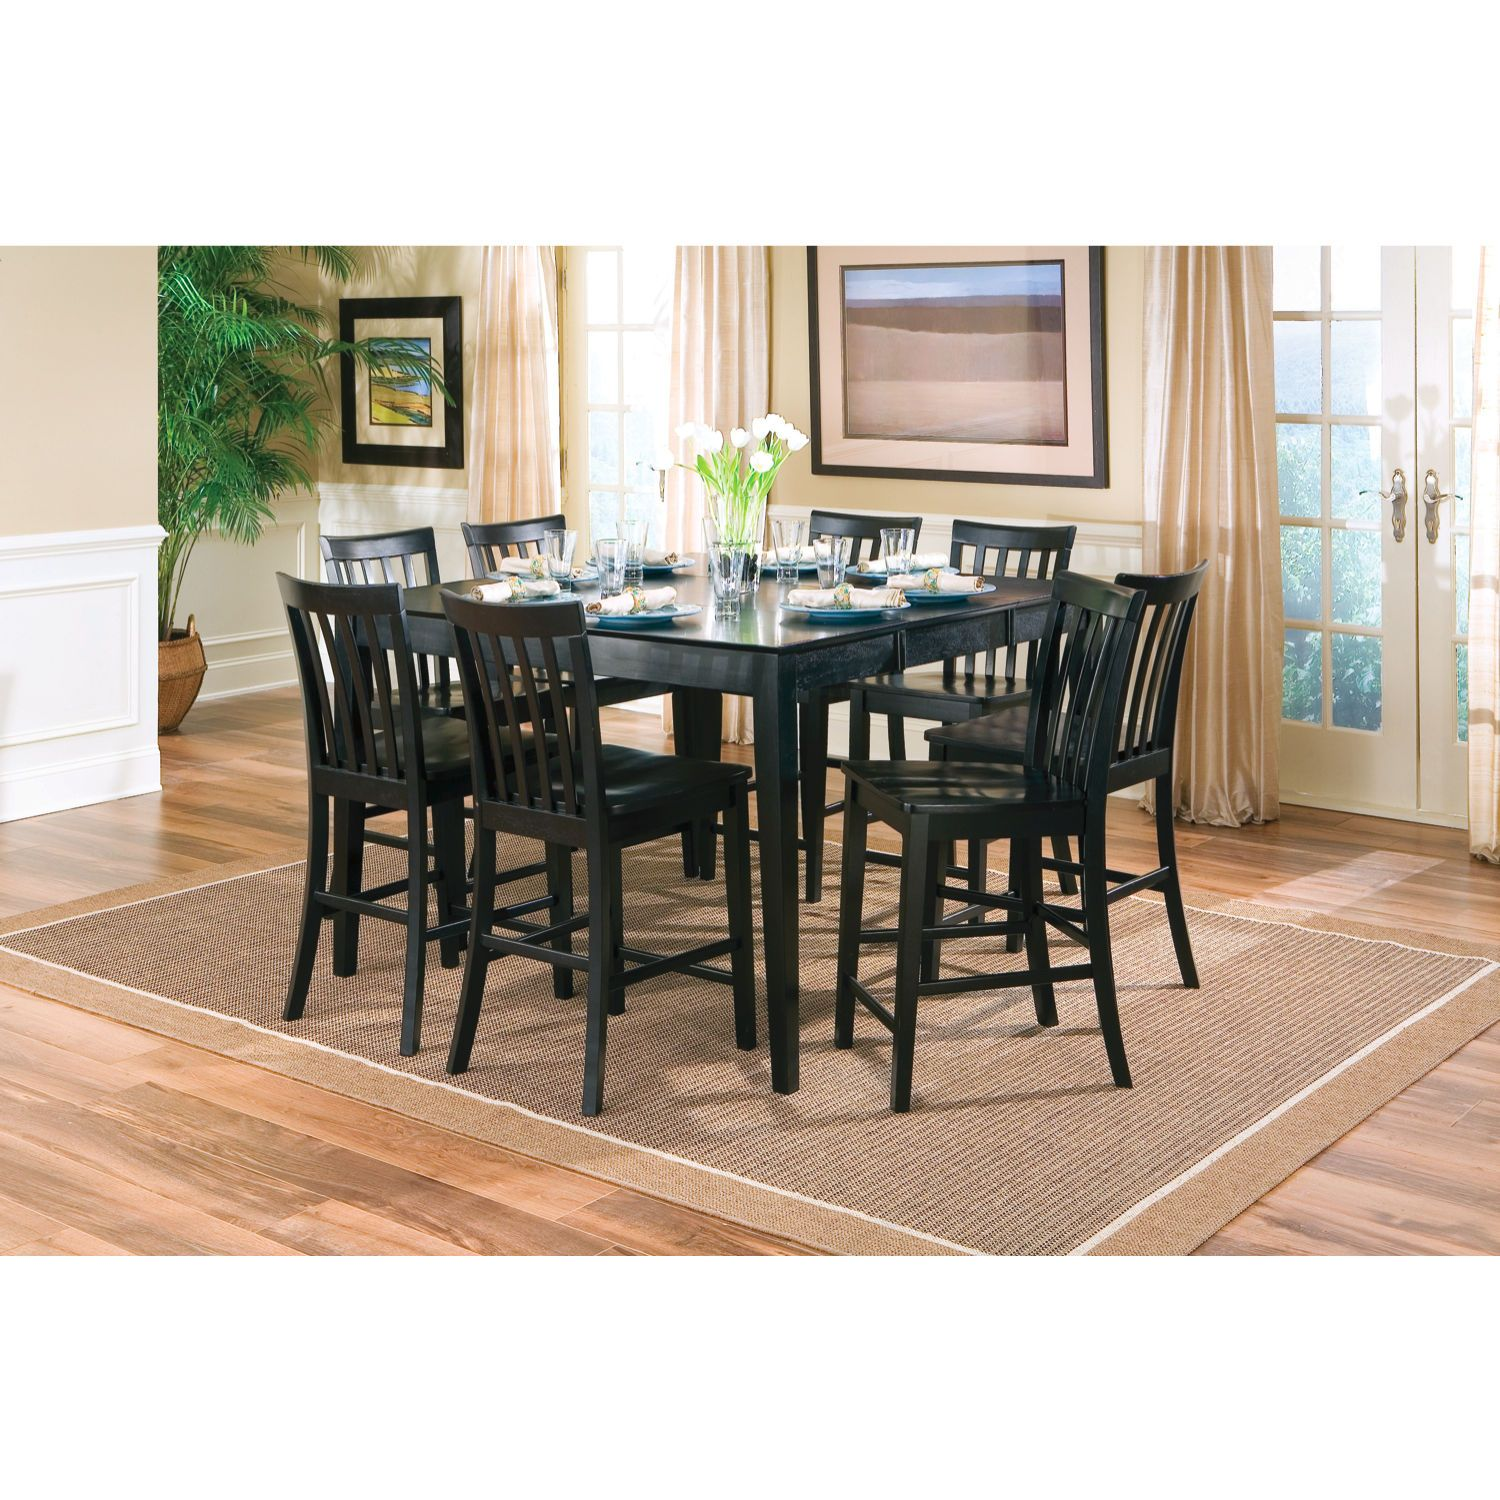 Superieur Kitchen U0026 Dining Room Sets. Dining StoolsBlack Dining TablesCounter Height  ...